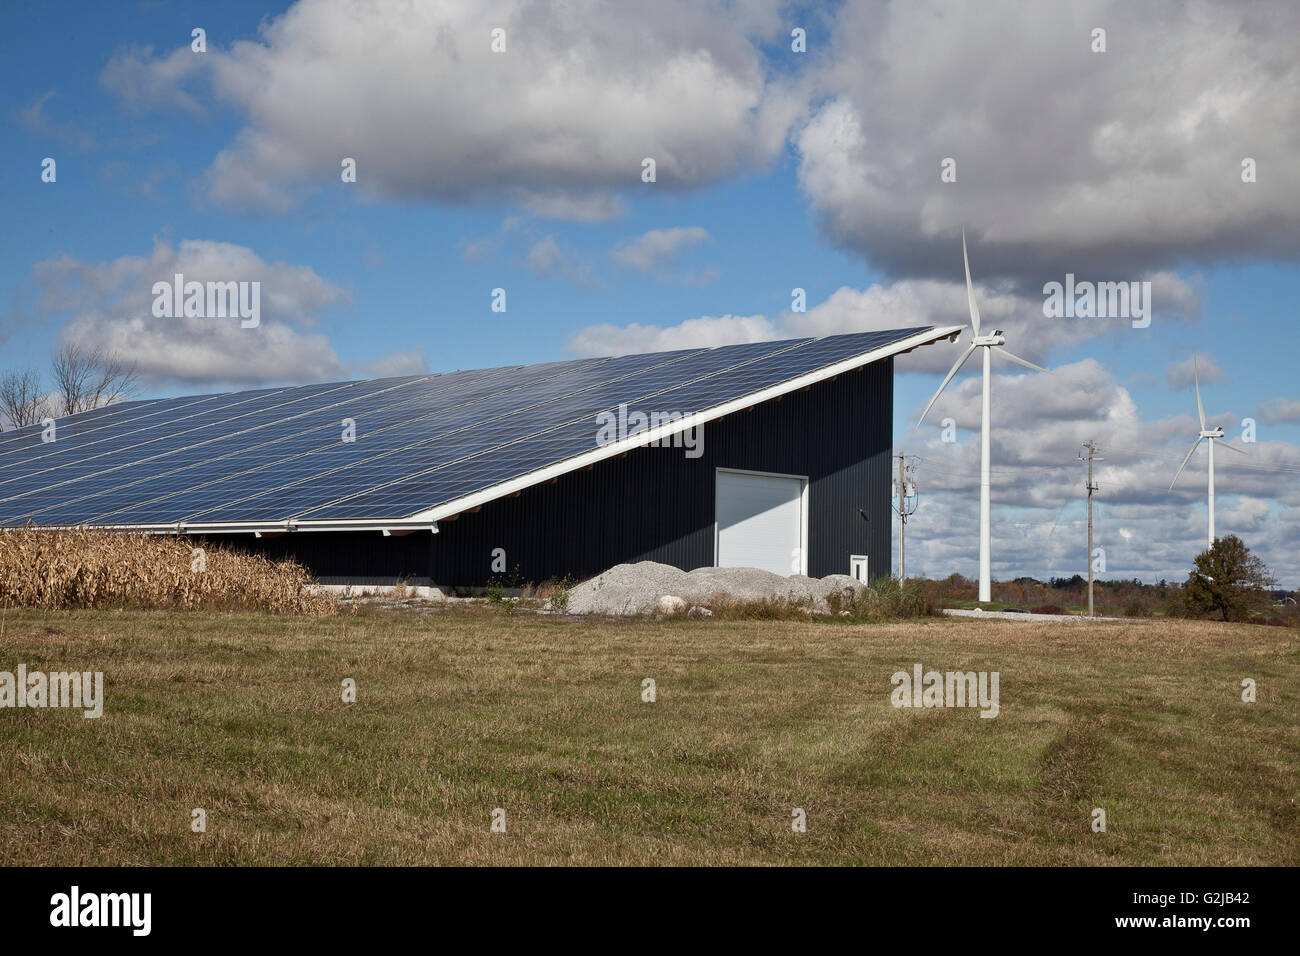 Solar panels on Highways Storage Building in southwestern Ontario (near Lake Erie), Ontario, Canada. - Stock Image